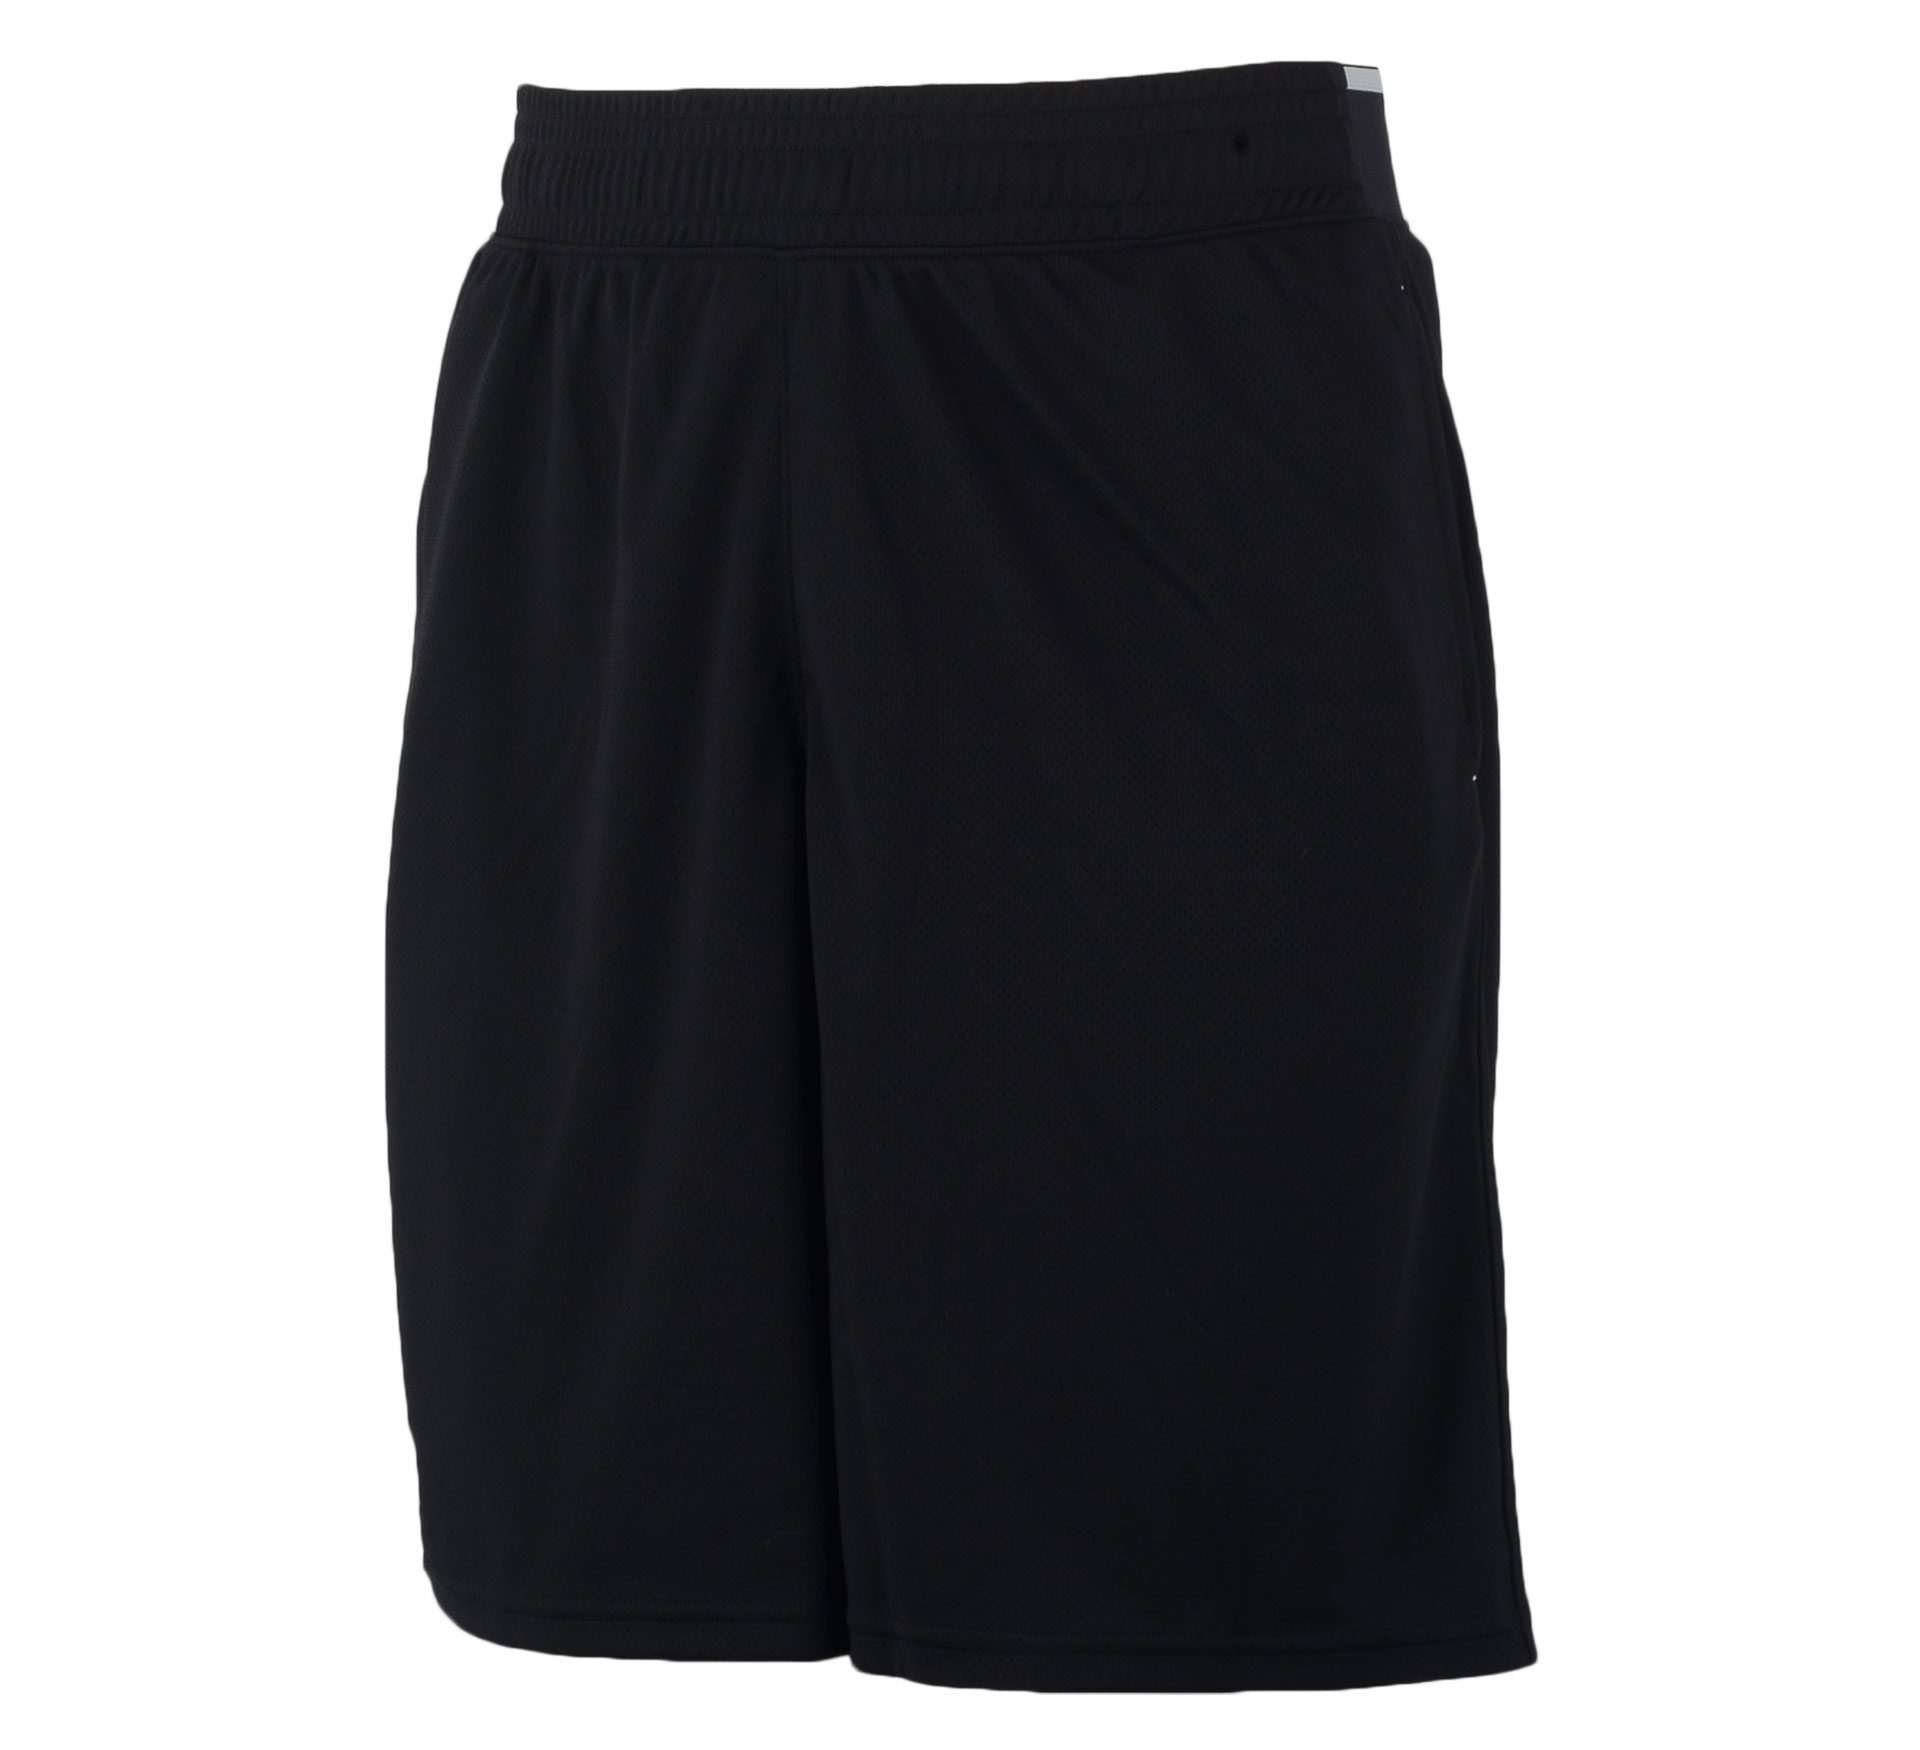 "Under Armour HeatGear Reflex 10"" Short zwart - wit"